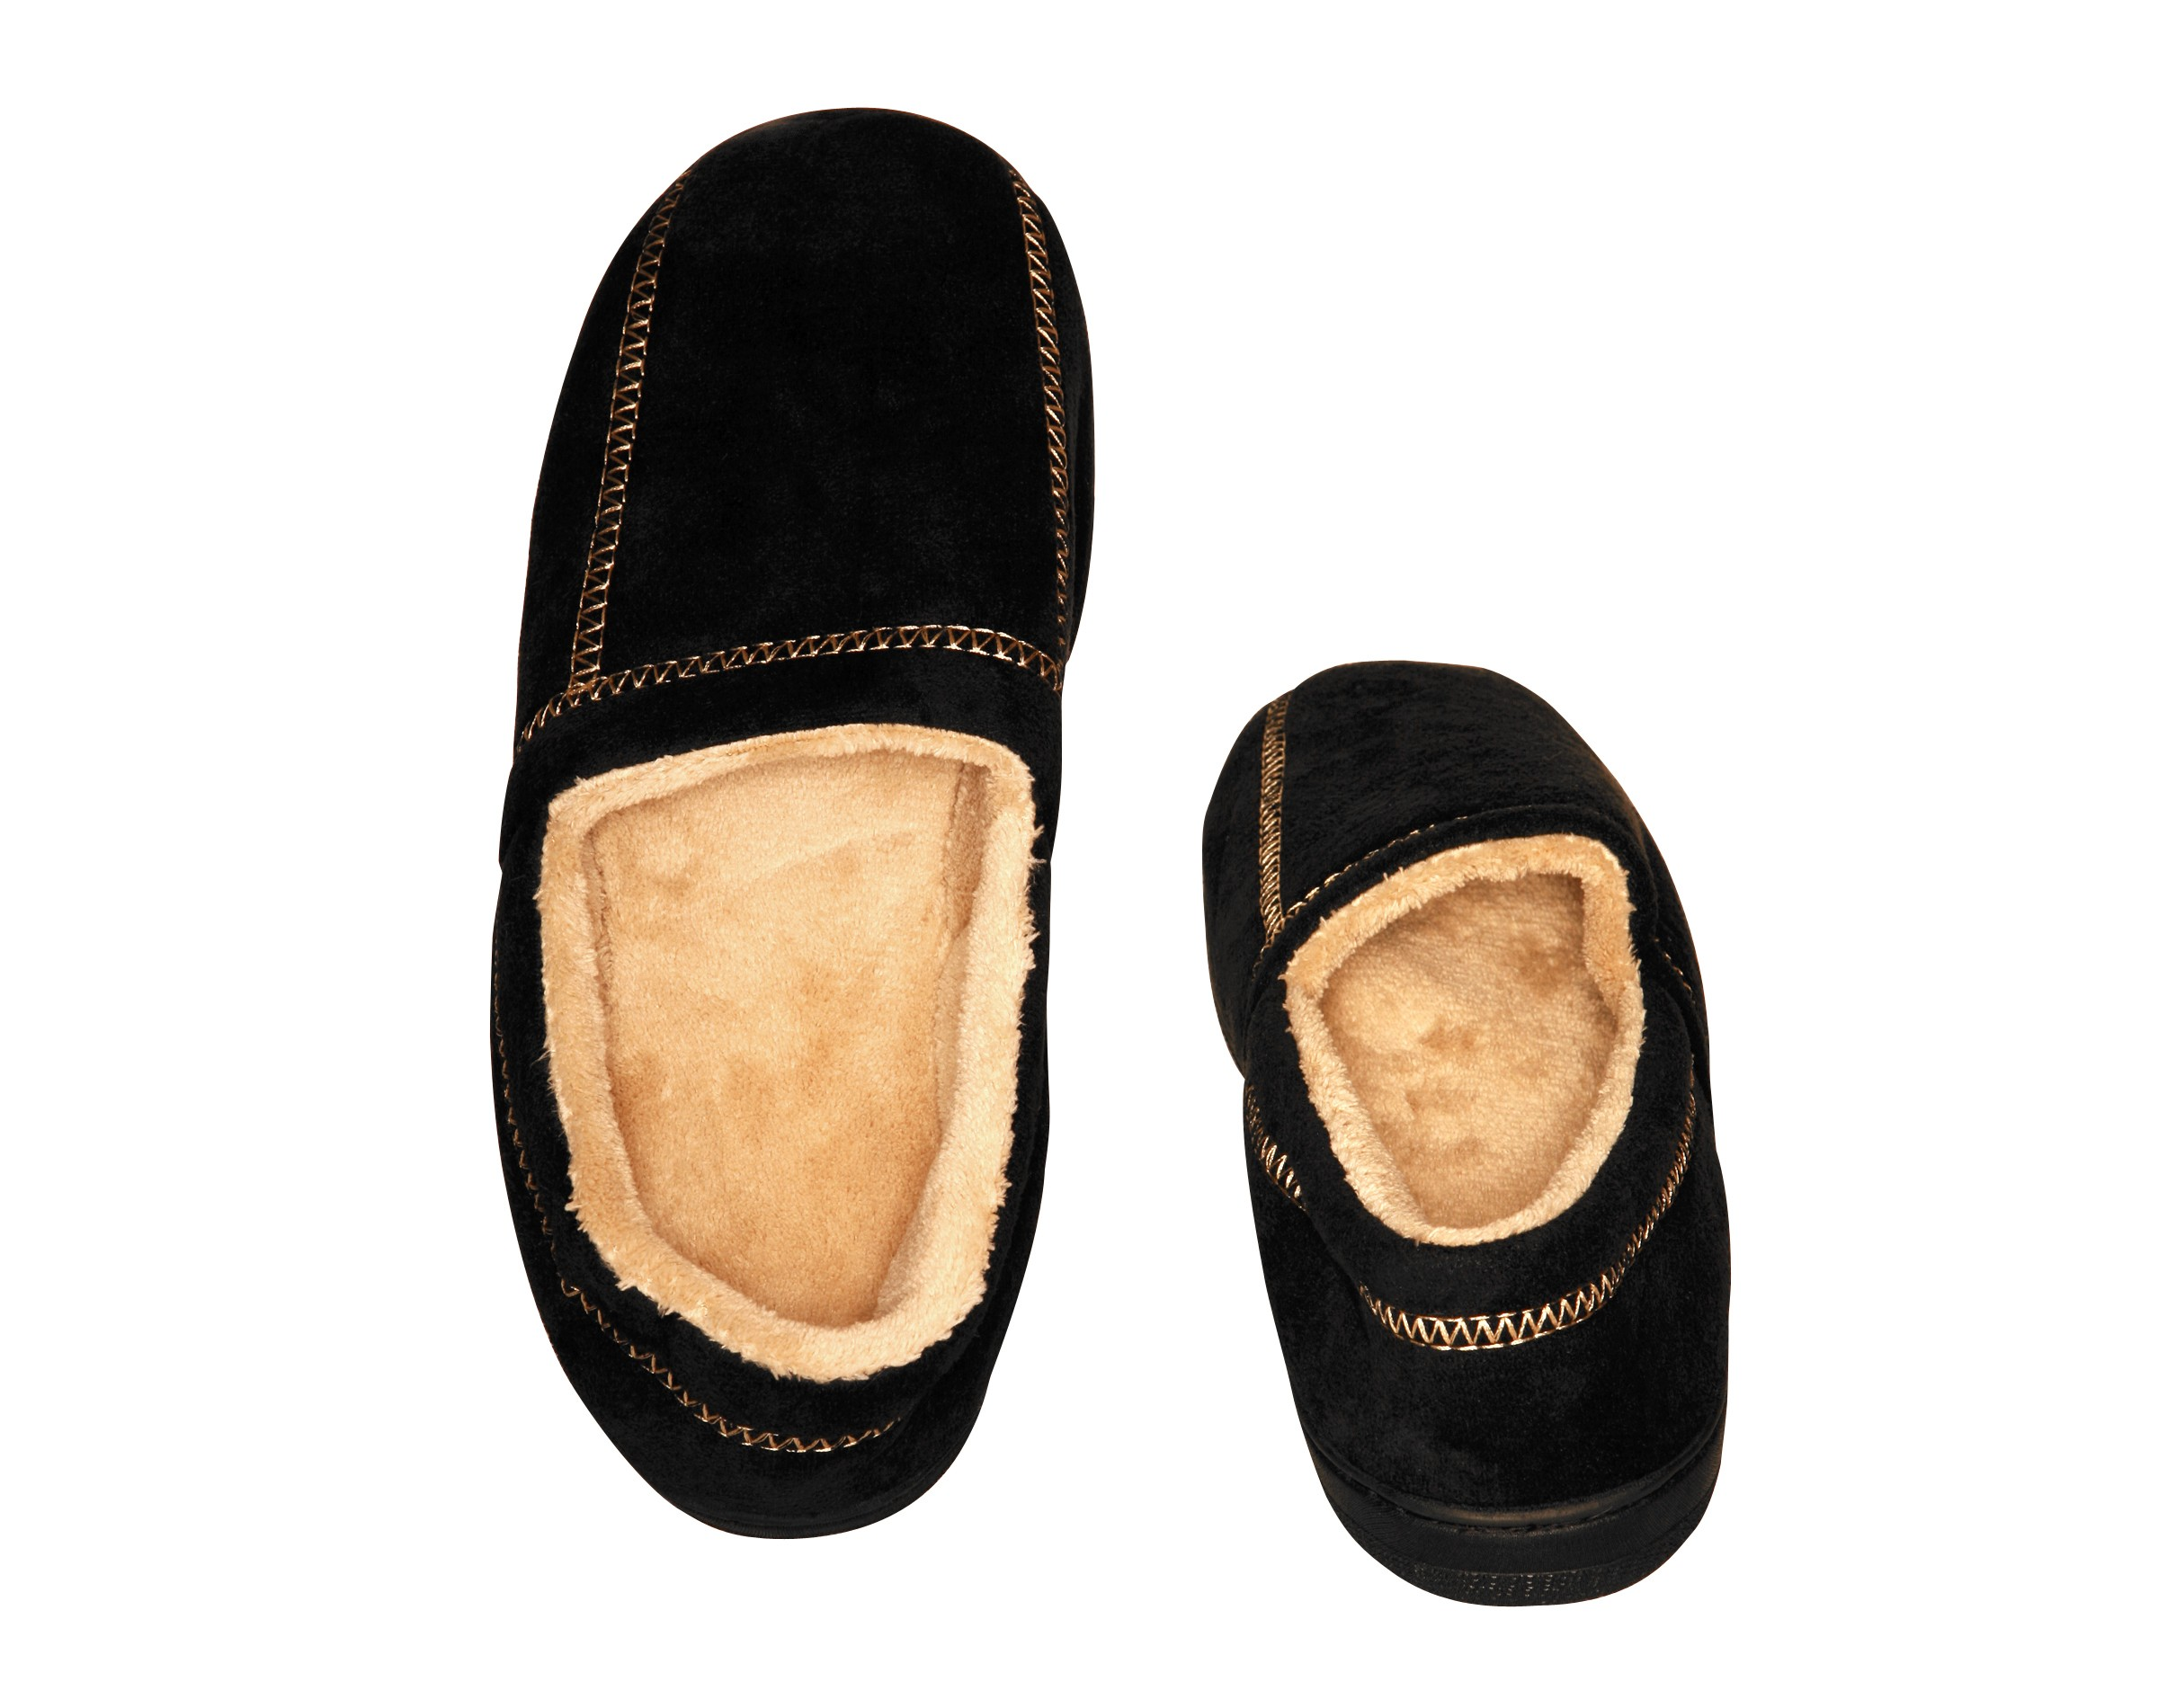 c37126a094705 Deluxe Comfort Modern Moccasin Memory Foam Mens Slipper, Size 13-14 -  Stylish Microsuede - Long Lasting Memory Foam - Warm Fleece Lining - Mens  Slippers, ...